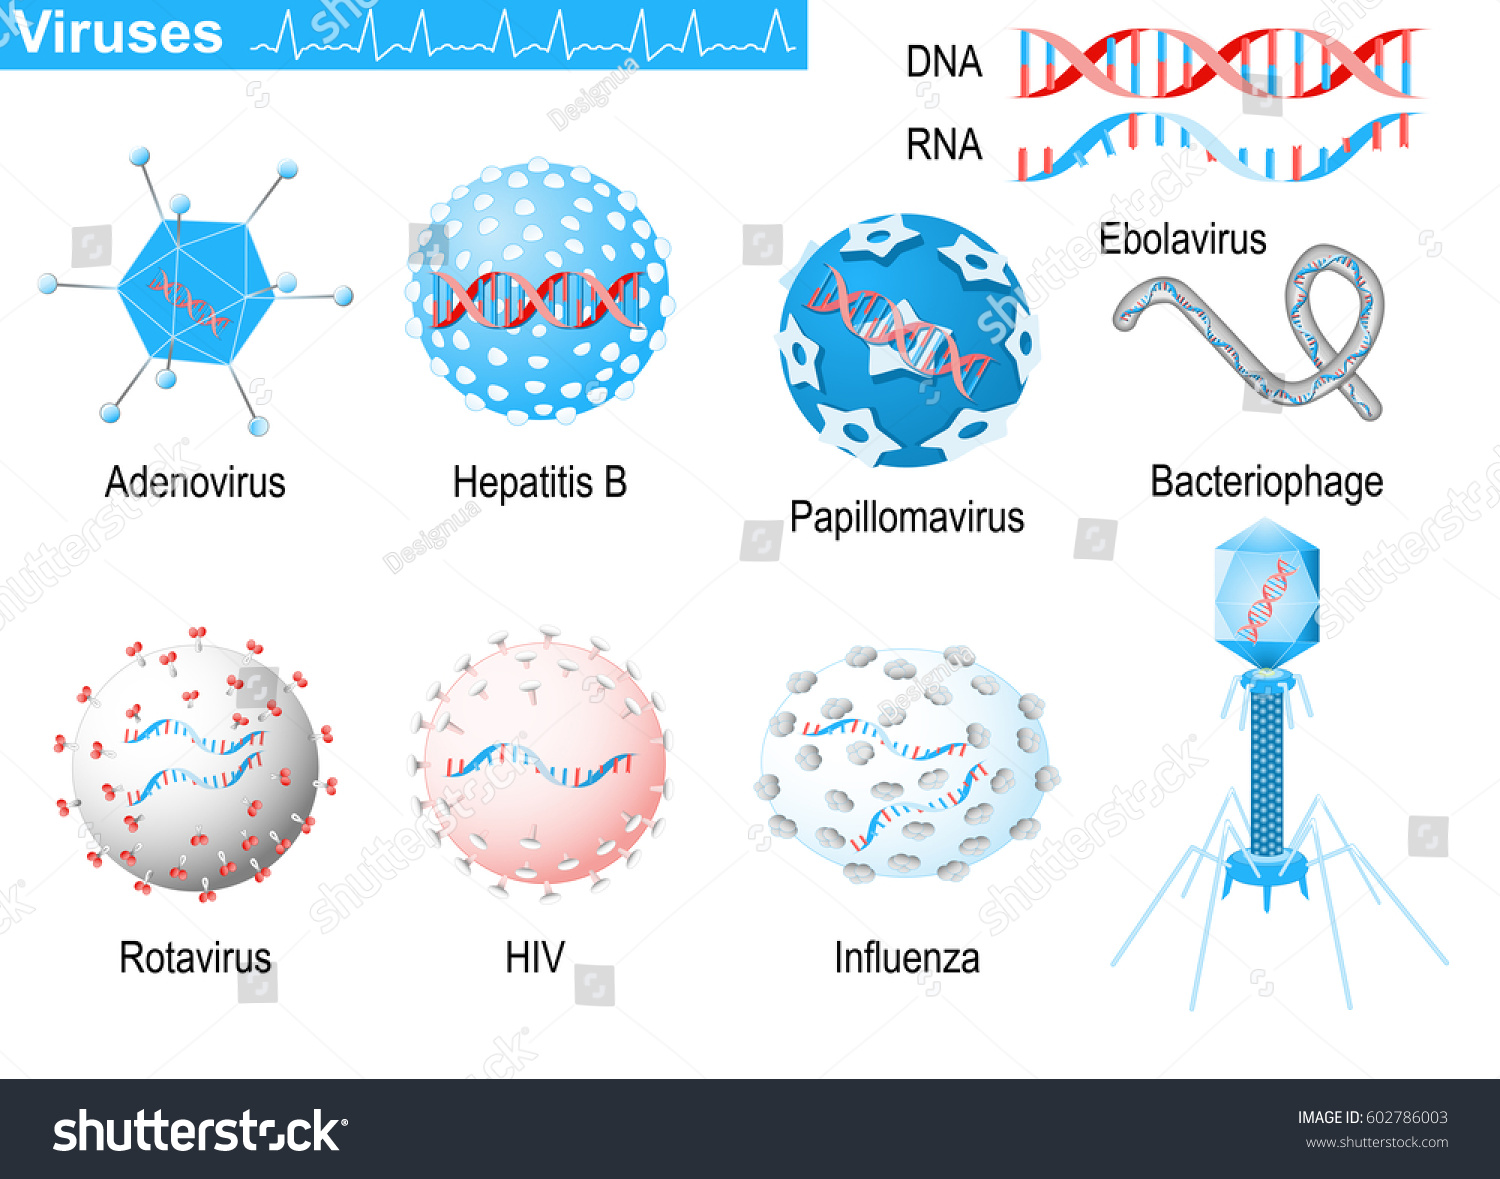 Viruses diagram showing shapes virions bacteriophage em vetor stock viruses diagram showing shapes of virions bacteriophage ebolavirus hepatitis rotavirus ccuart Image collections